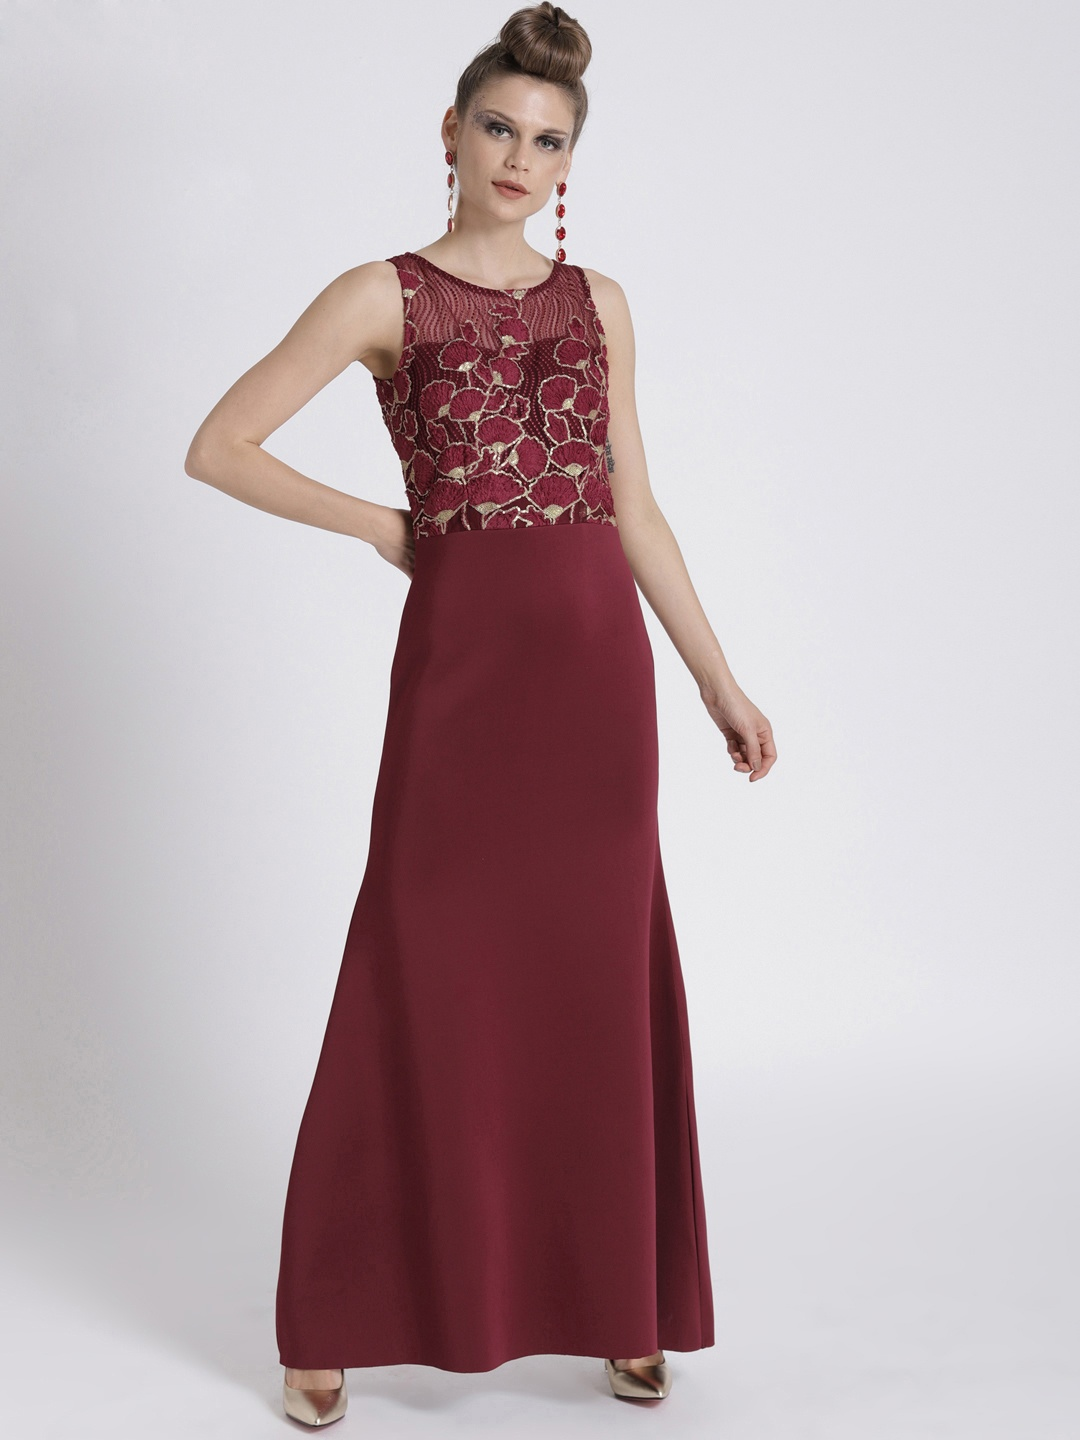 51a759a8a297 What are some good options for women s formal wear  - Quora